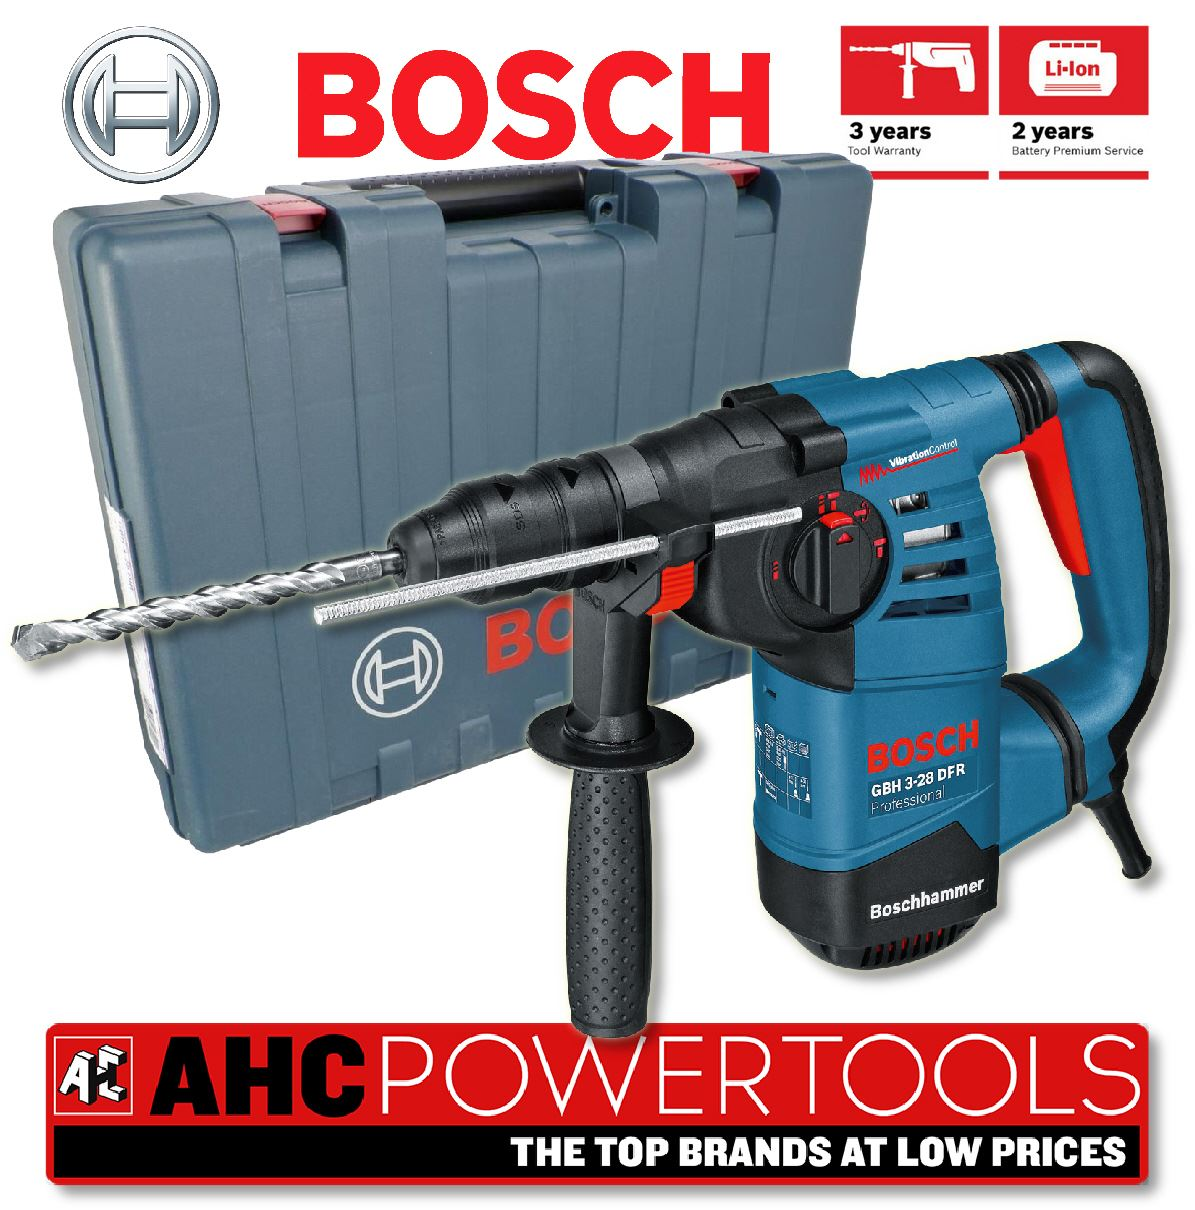 bosch gbh 3 28 dfr 3kg sds multi drill rotary hammer drill with qc chuck 110v. Black Bedroom Furniture Sets. Home Design Ideas